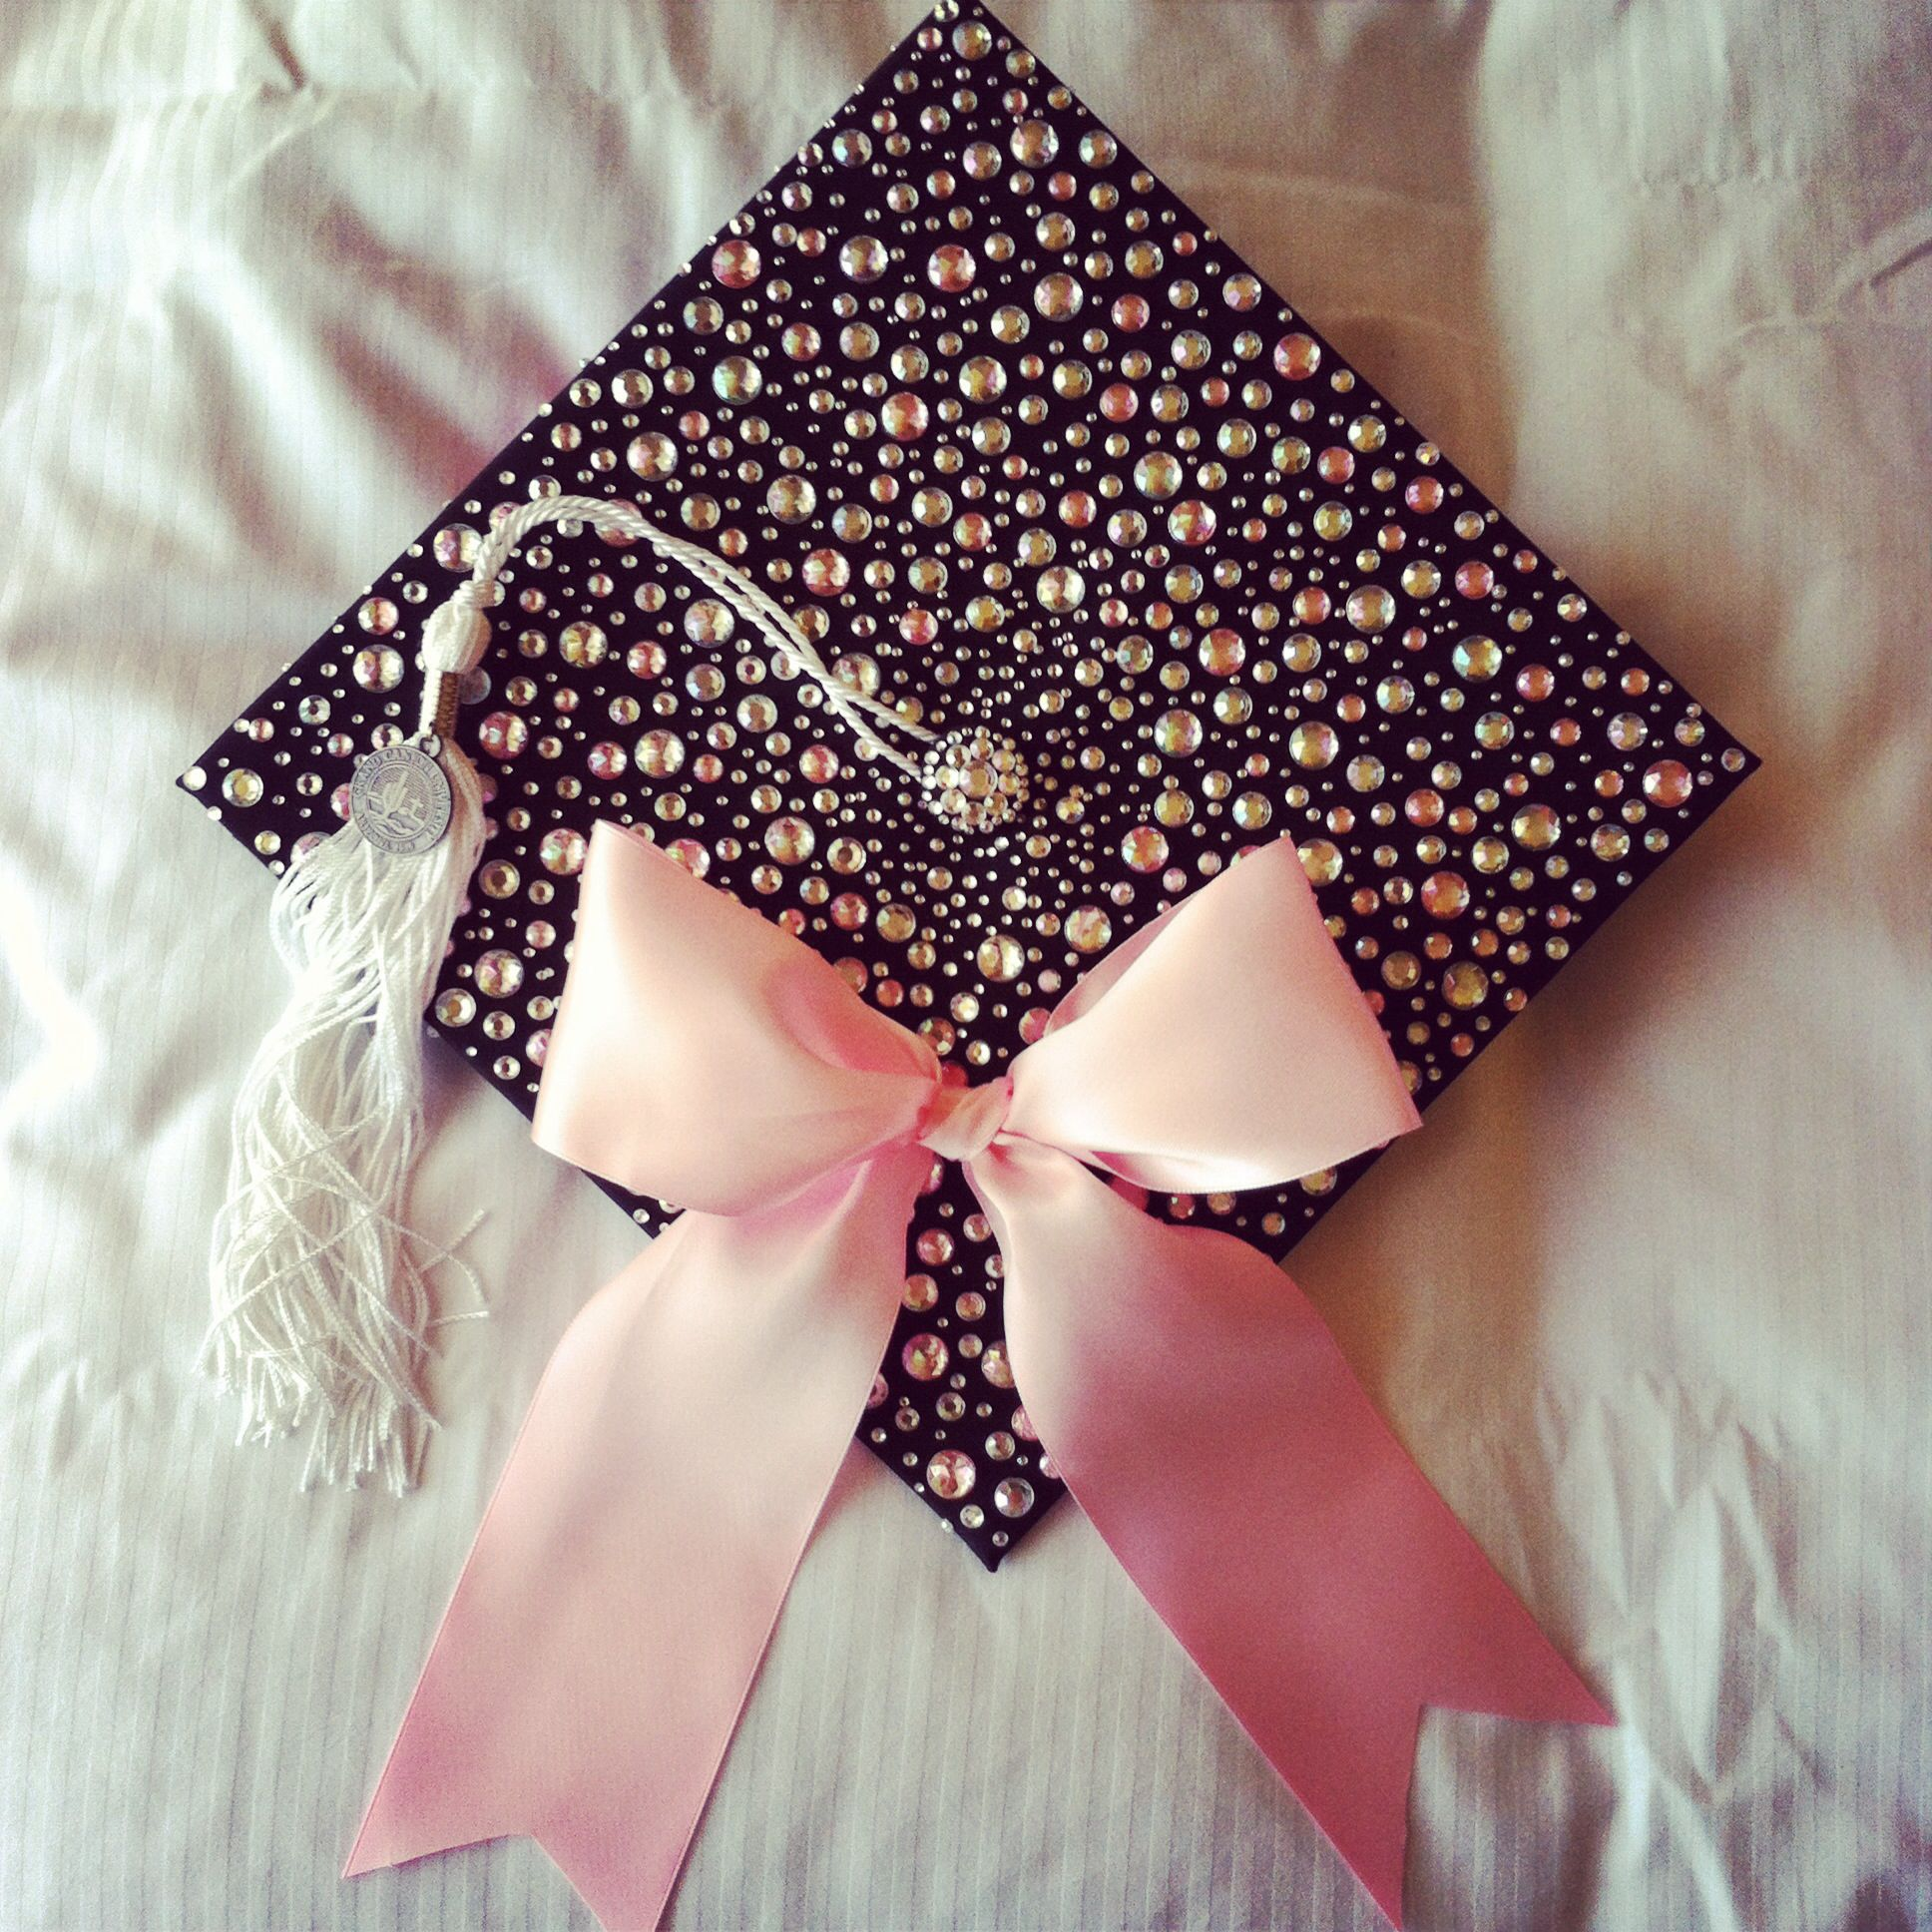 Graduation Cap...minus the bow! : ideas to decorate cap for graduation - www.pureclipart.com